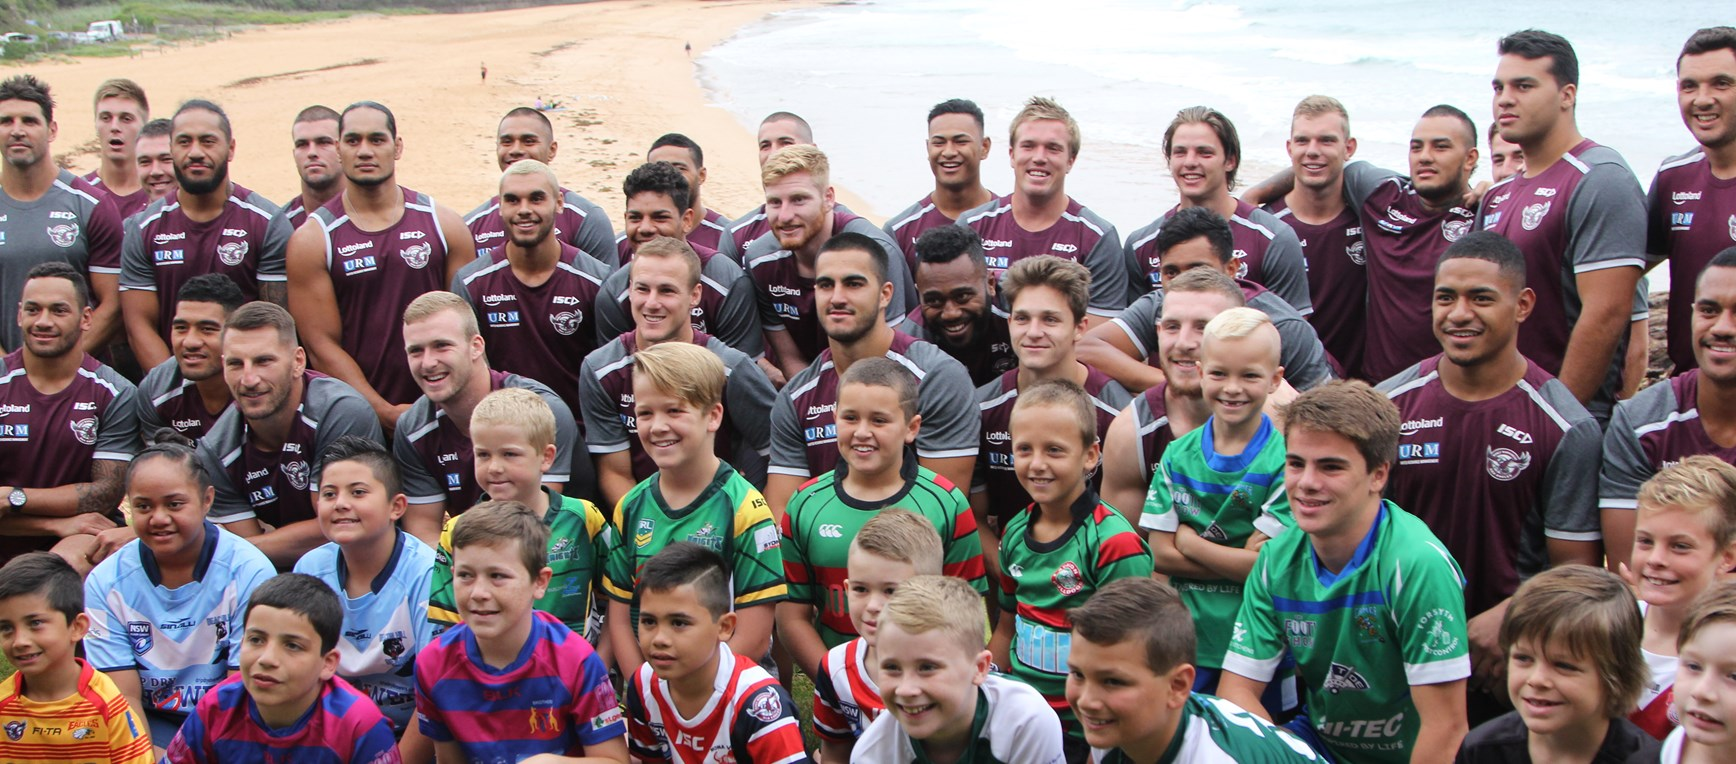 Manly JRL players enjoy photo shoot